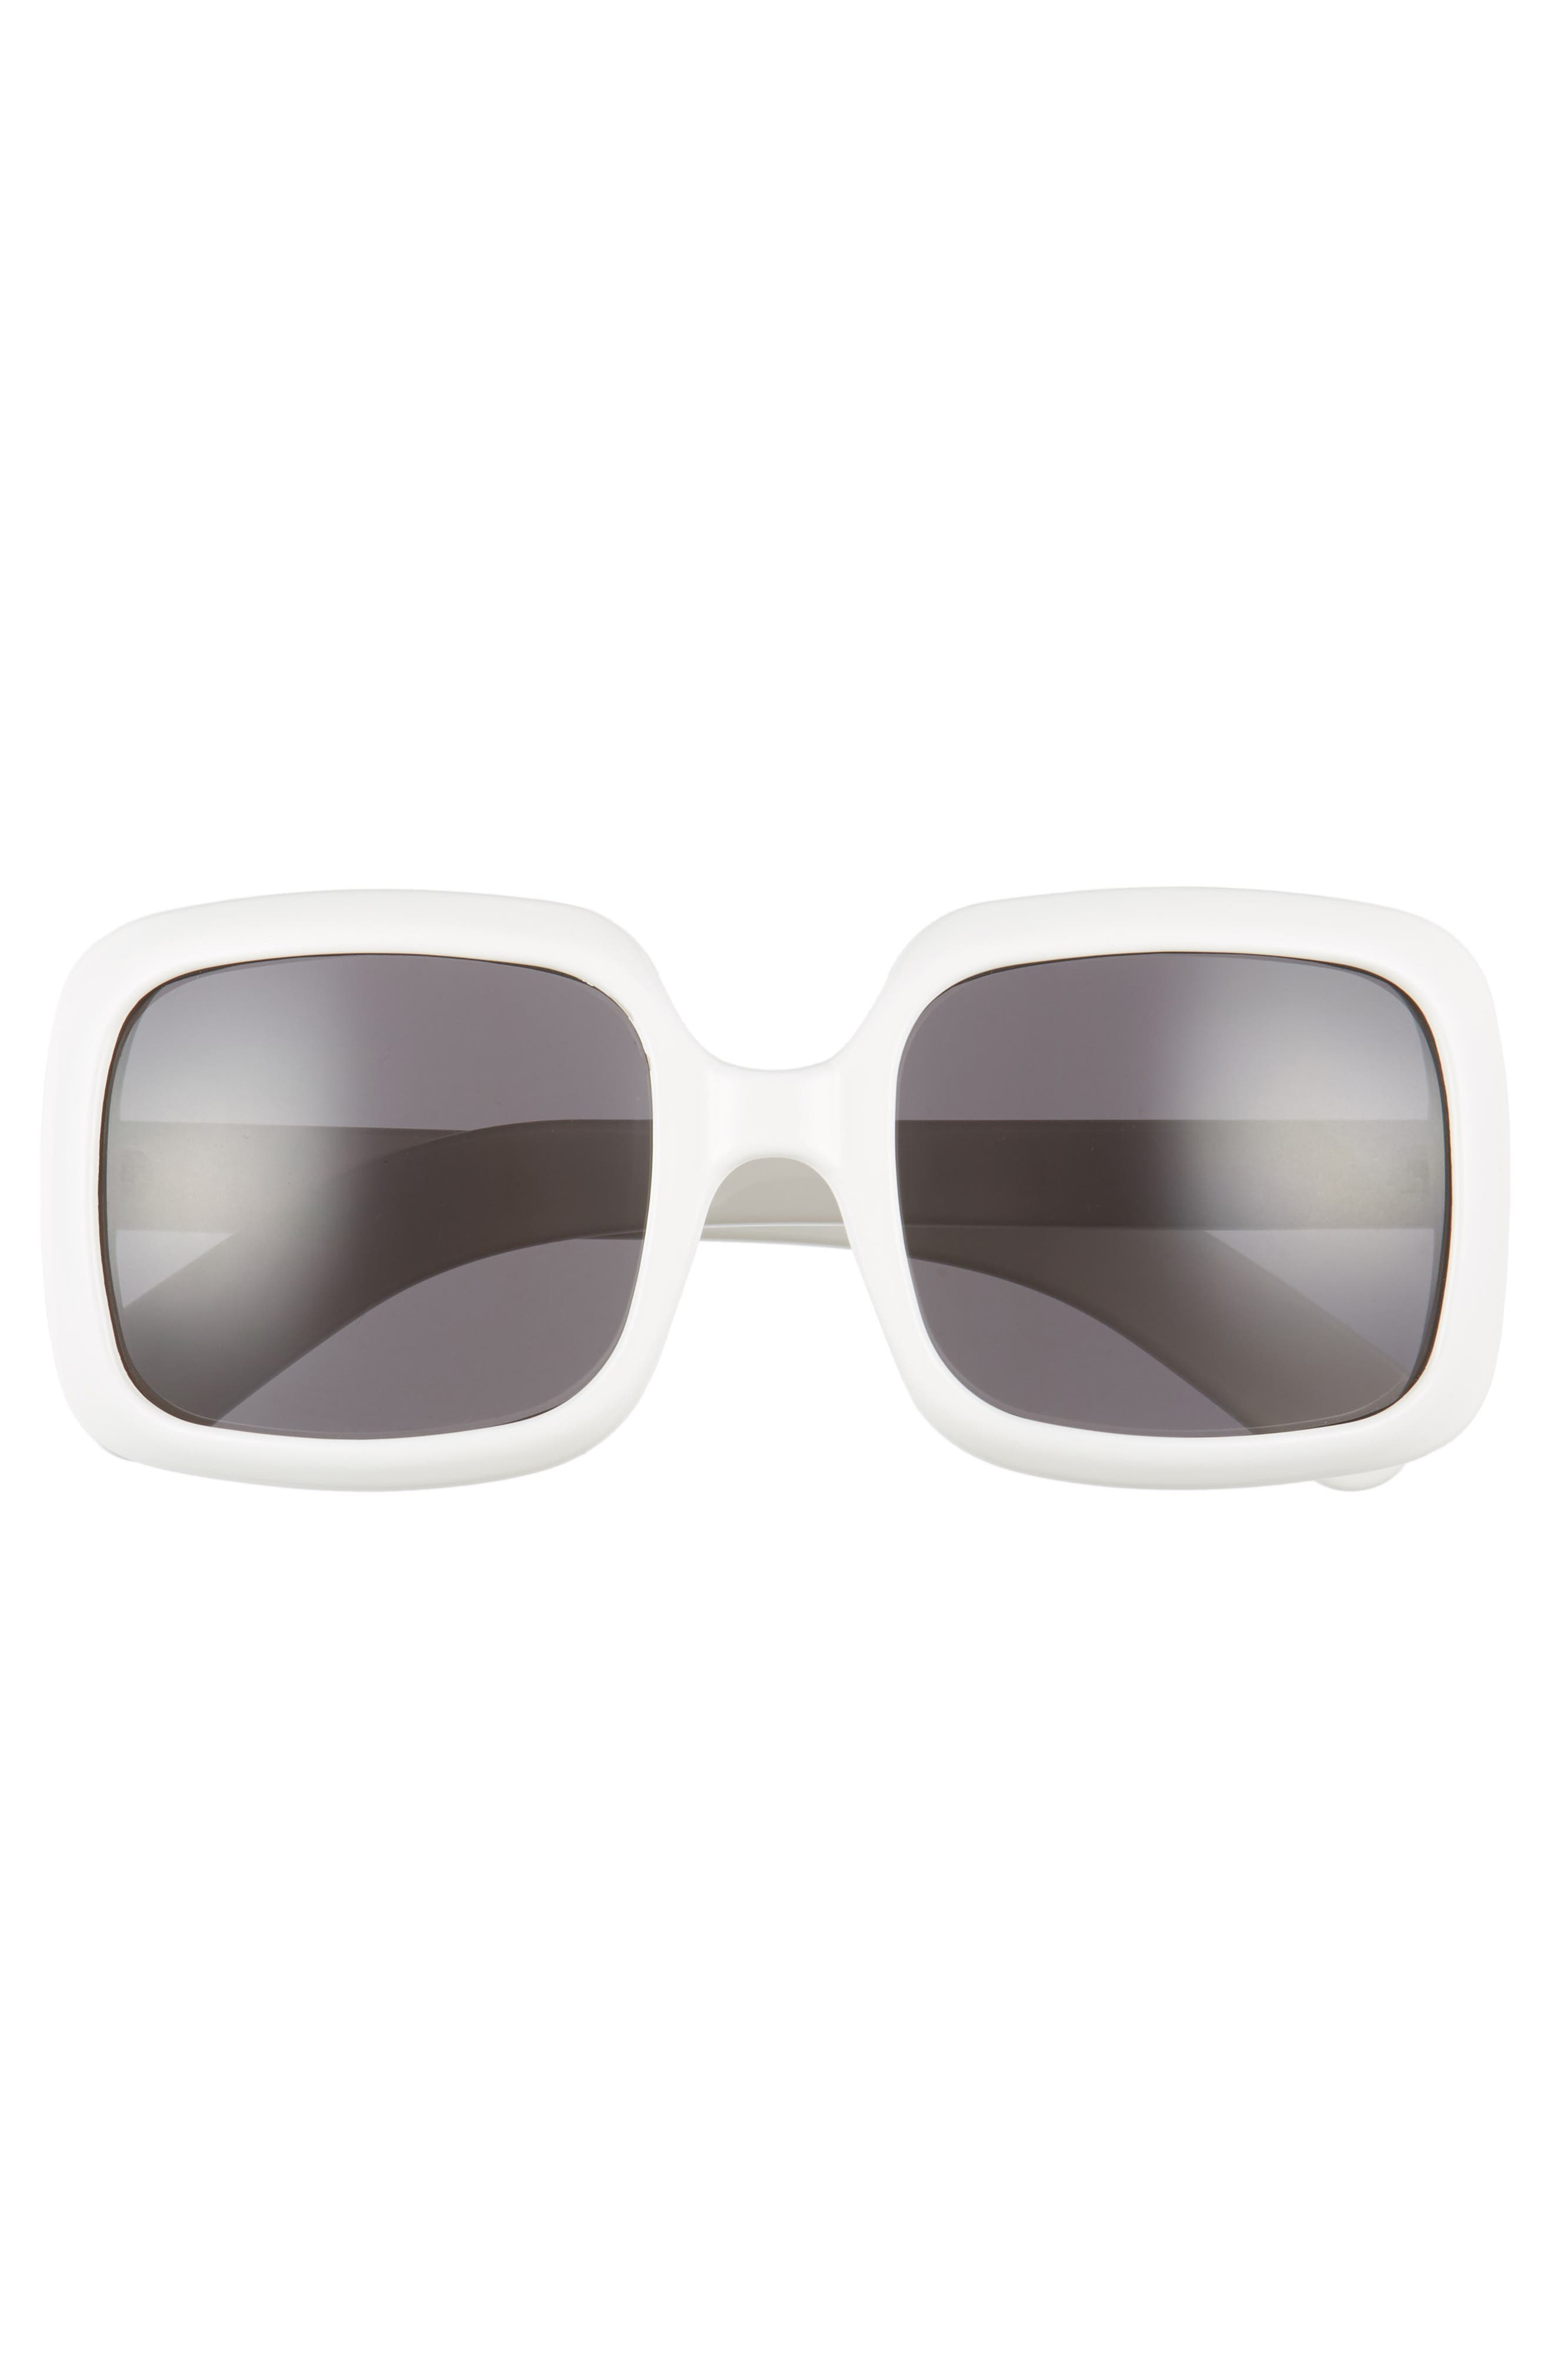 54mm Retro Square Sunglasses,                             Alternate thumbnail 3, color,                             White/ Black